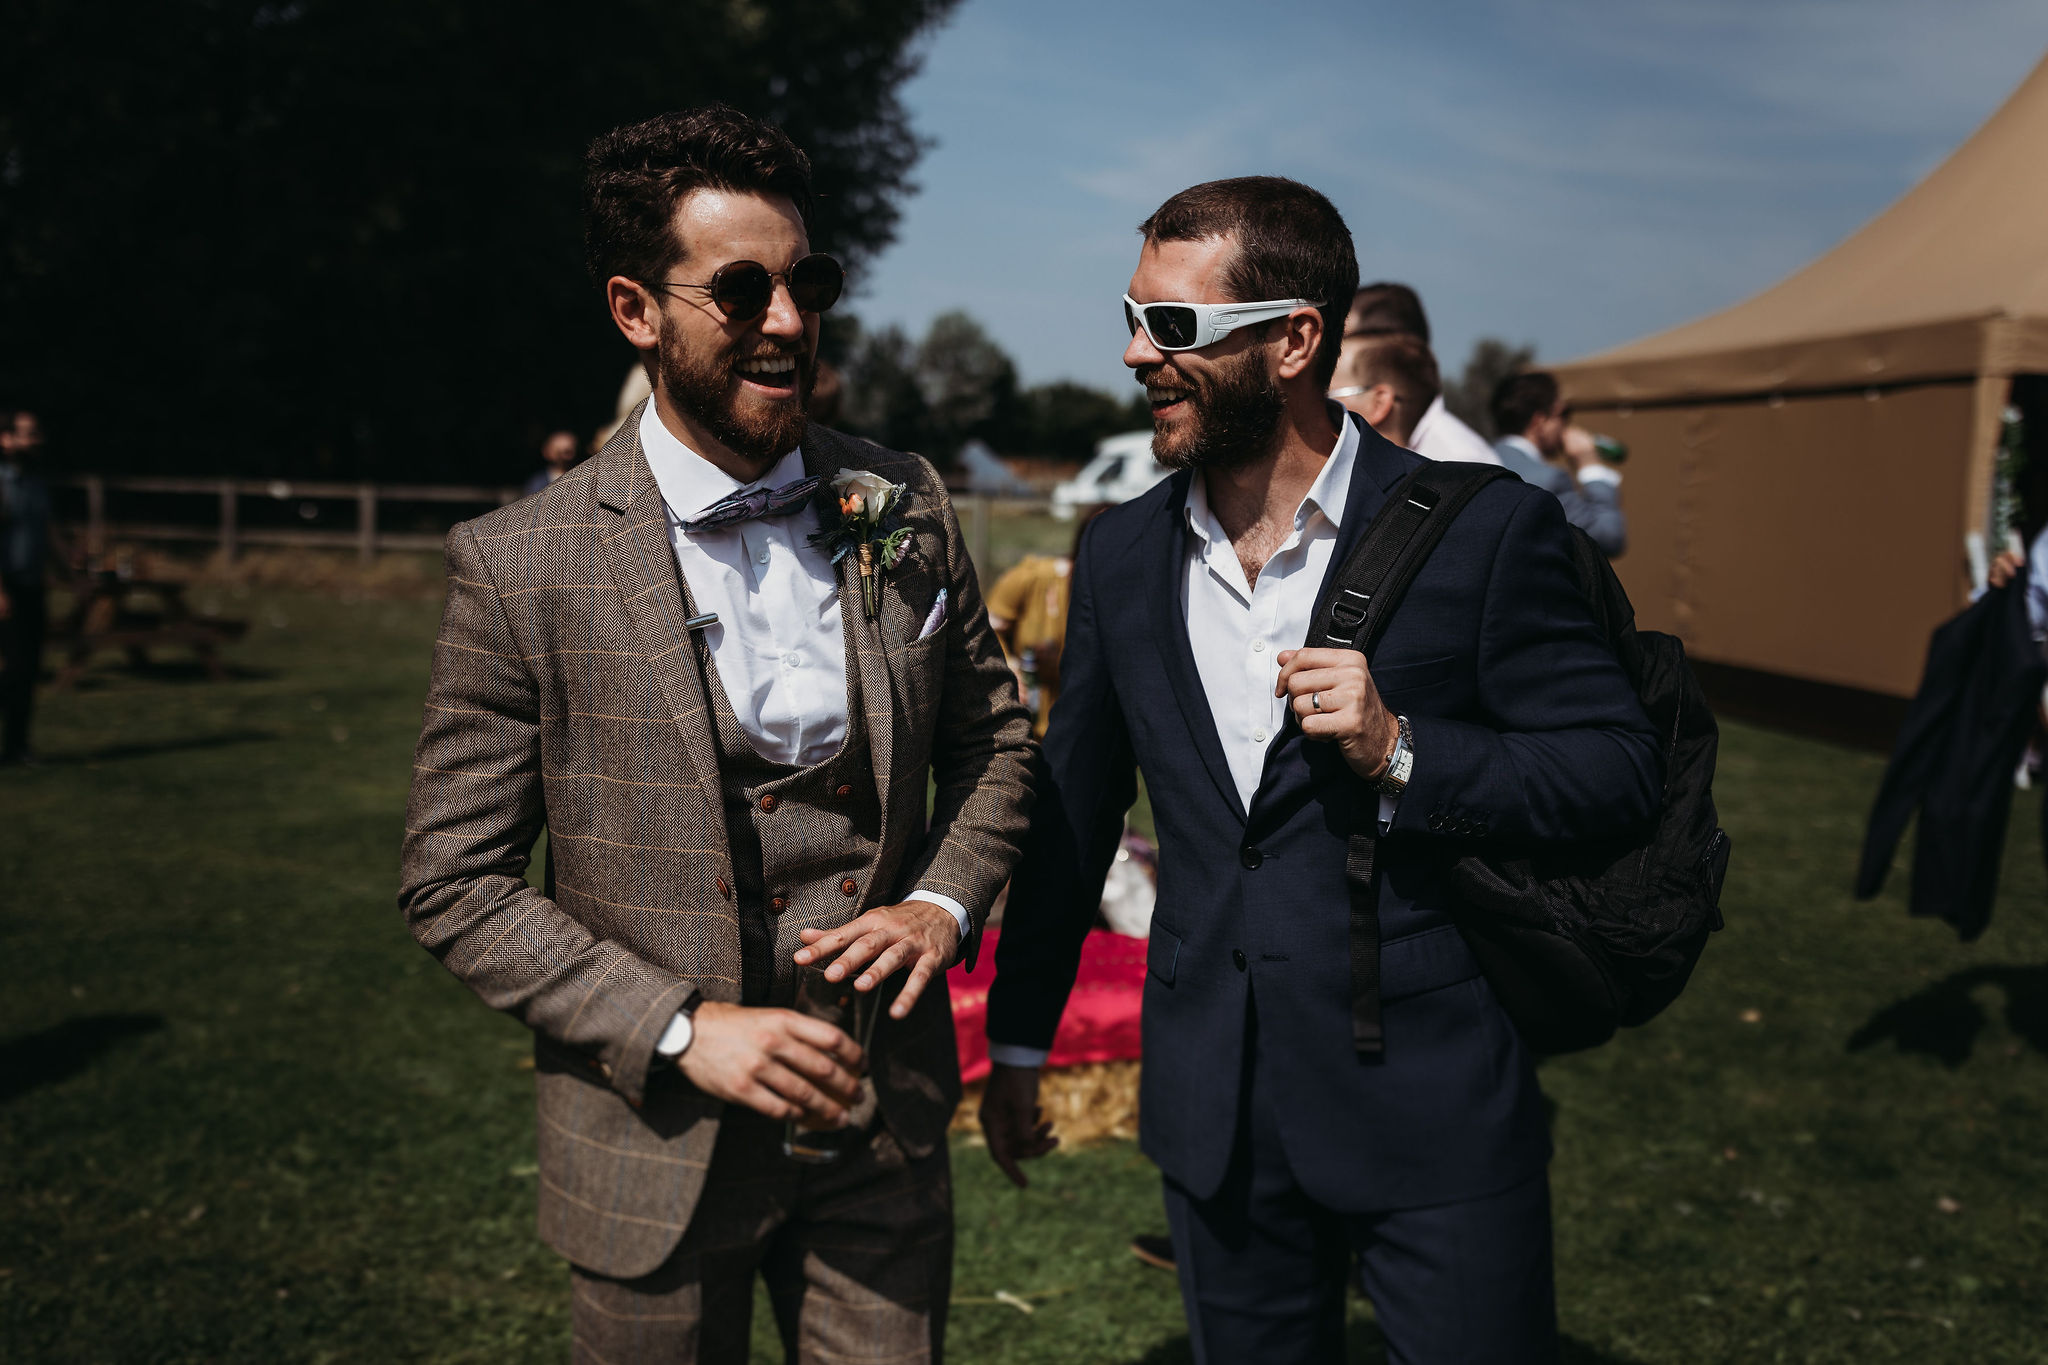 Groom and guest enjoying the day